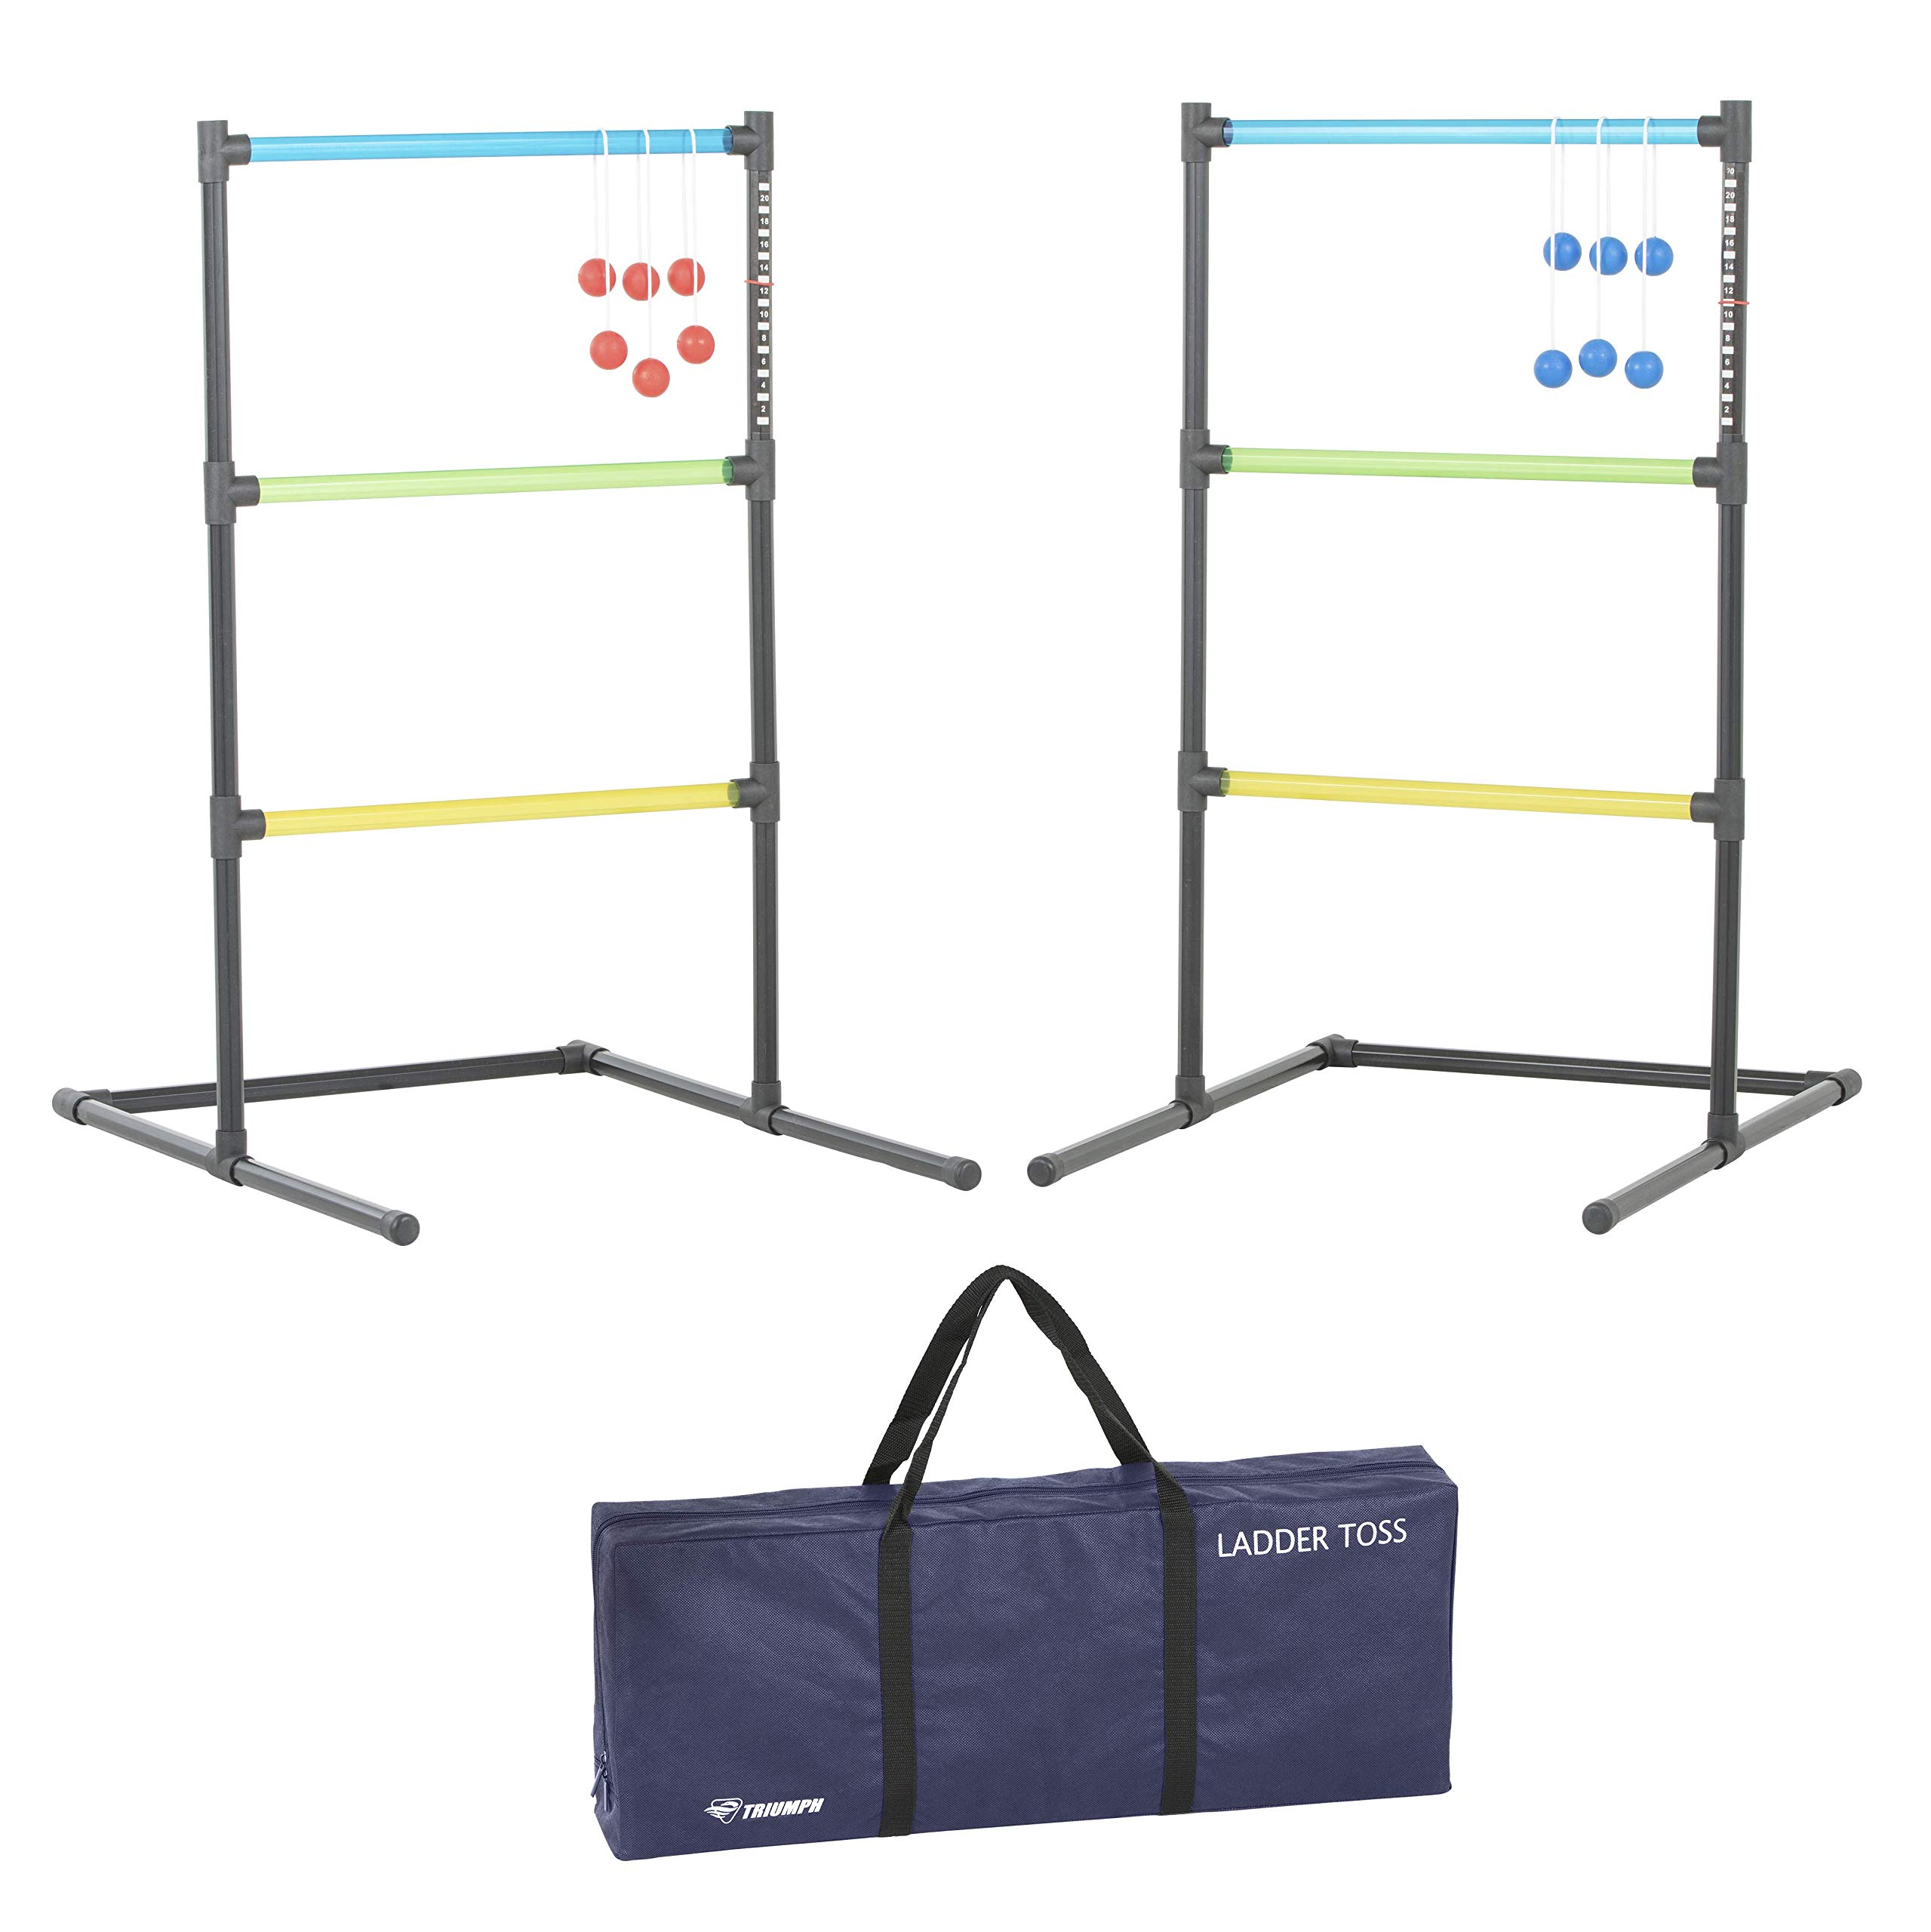 Triumph Ladder Toss Outdoor Set Requires No Tools to Assemble and Includes Six Soft Ball Bolas and Carry Bag by Triumph Sports